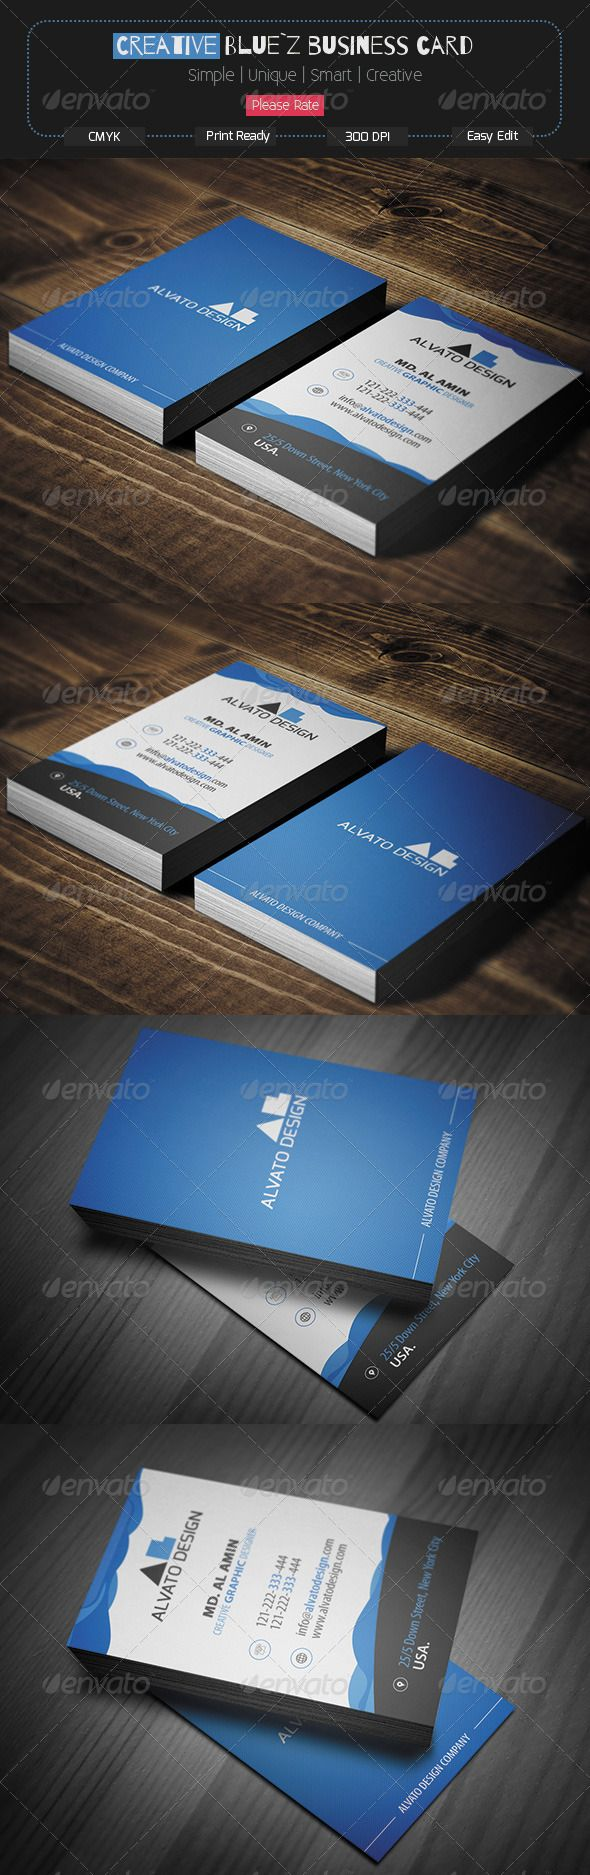 Creative Blue Z Business Card Business Cards Creative Templates Business Card Design Creative Business Cards Creative